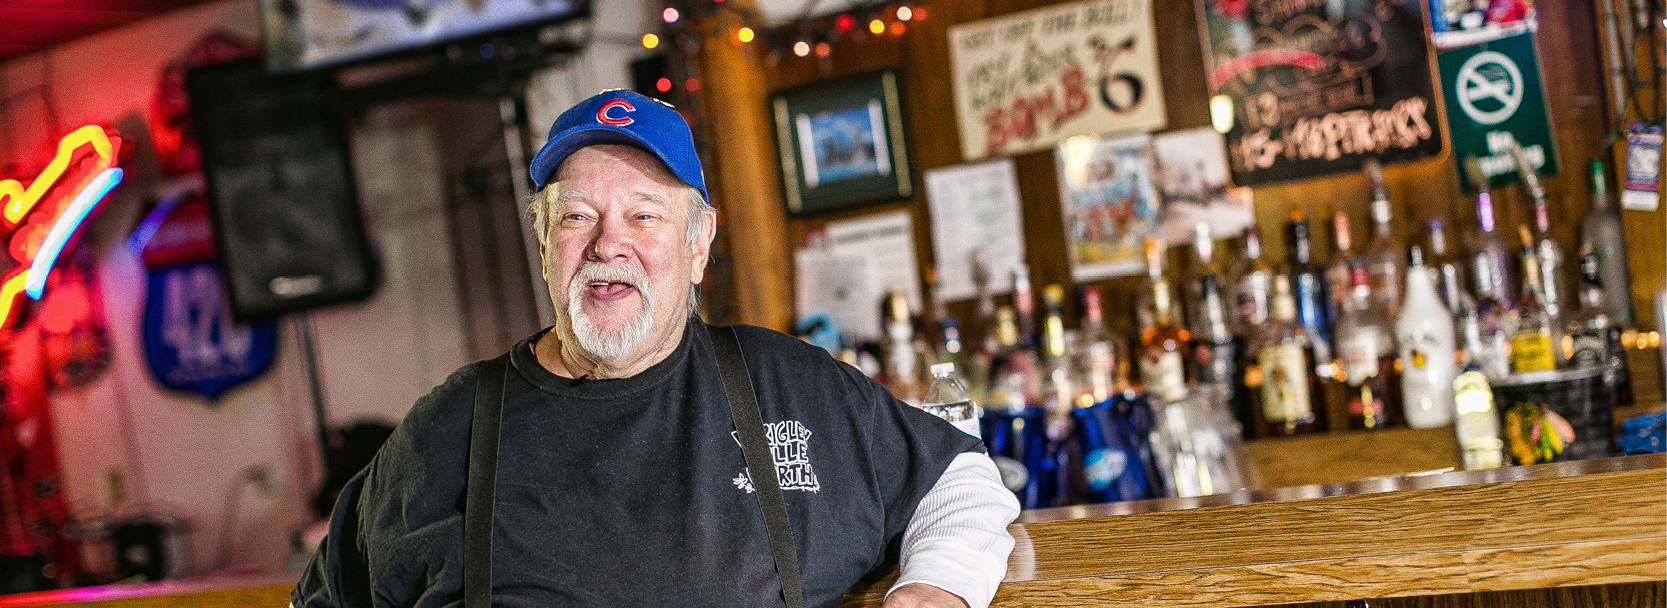 Meet Cubs superfan: Jessie Branham